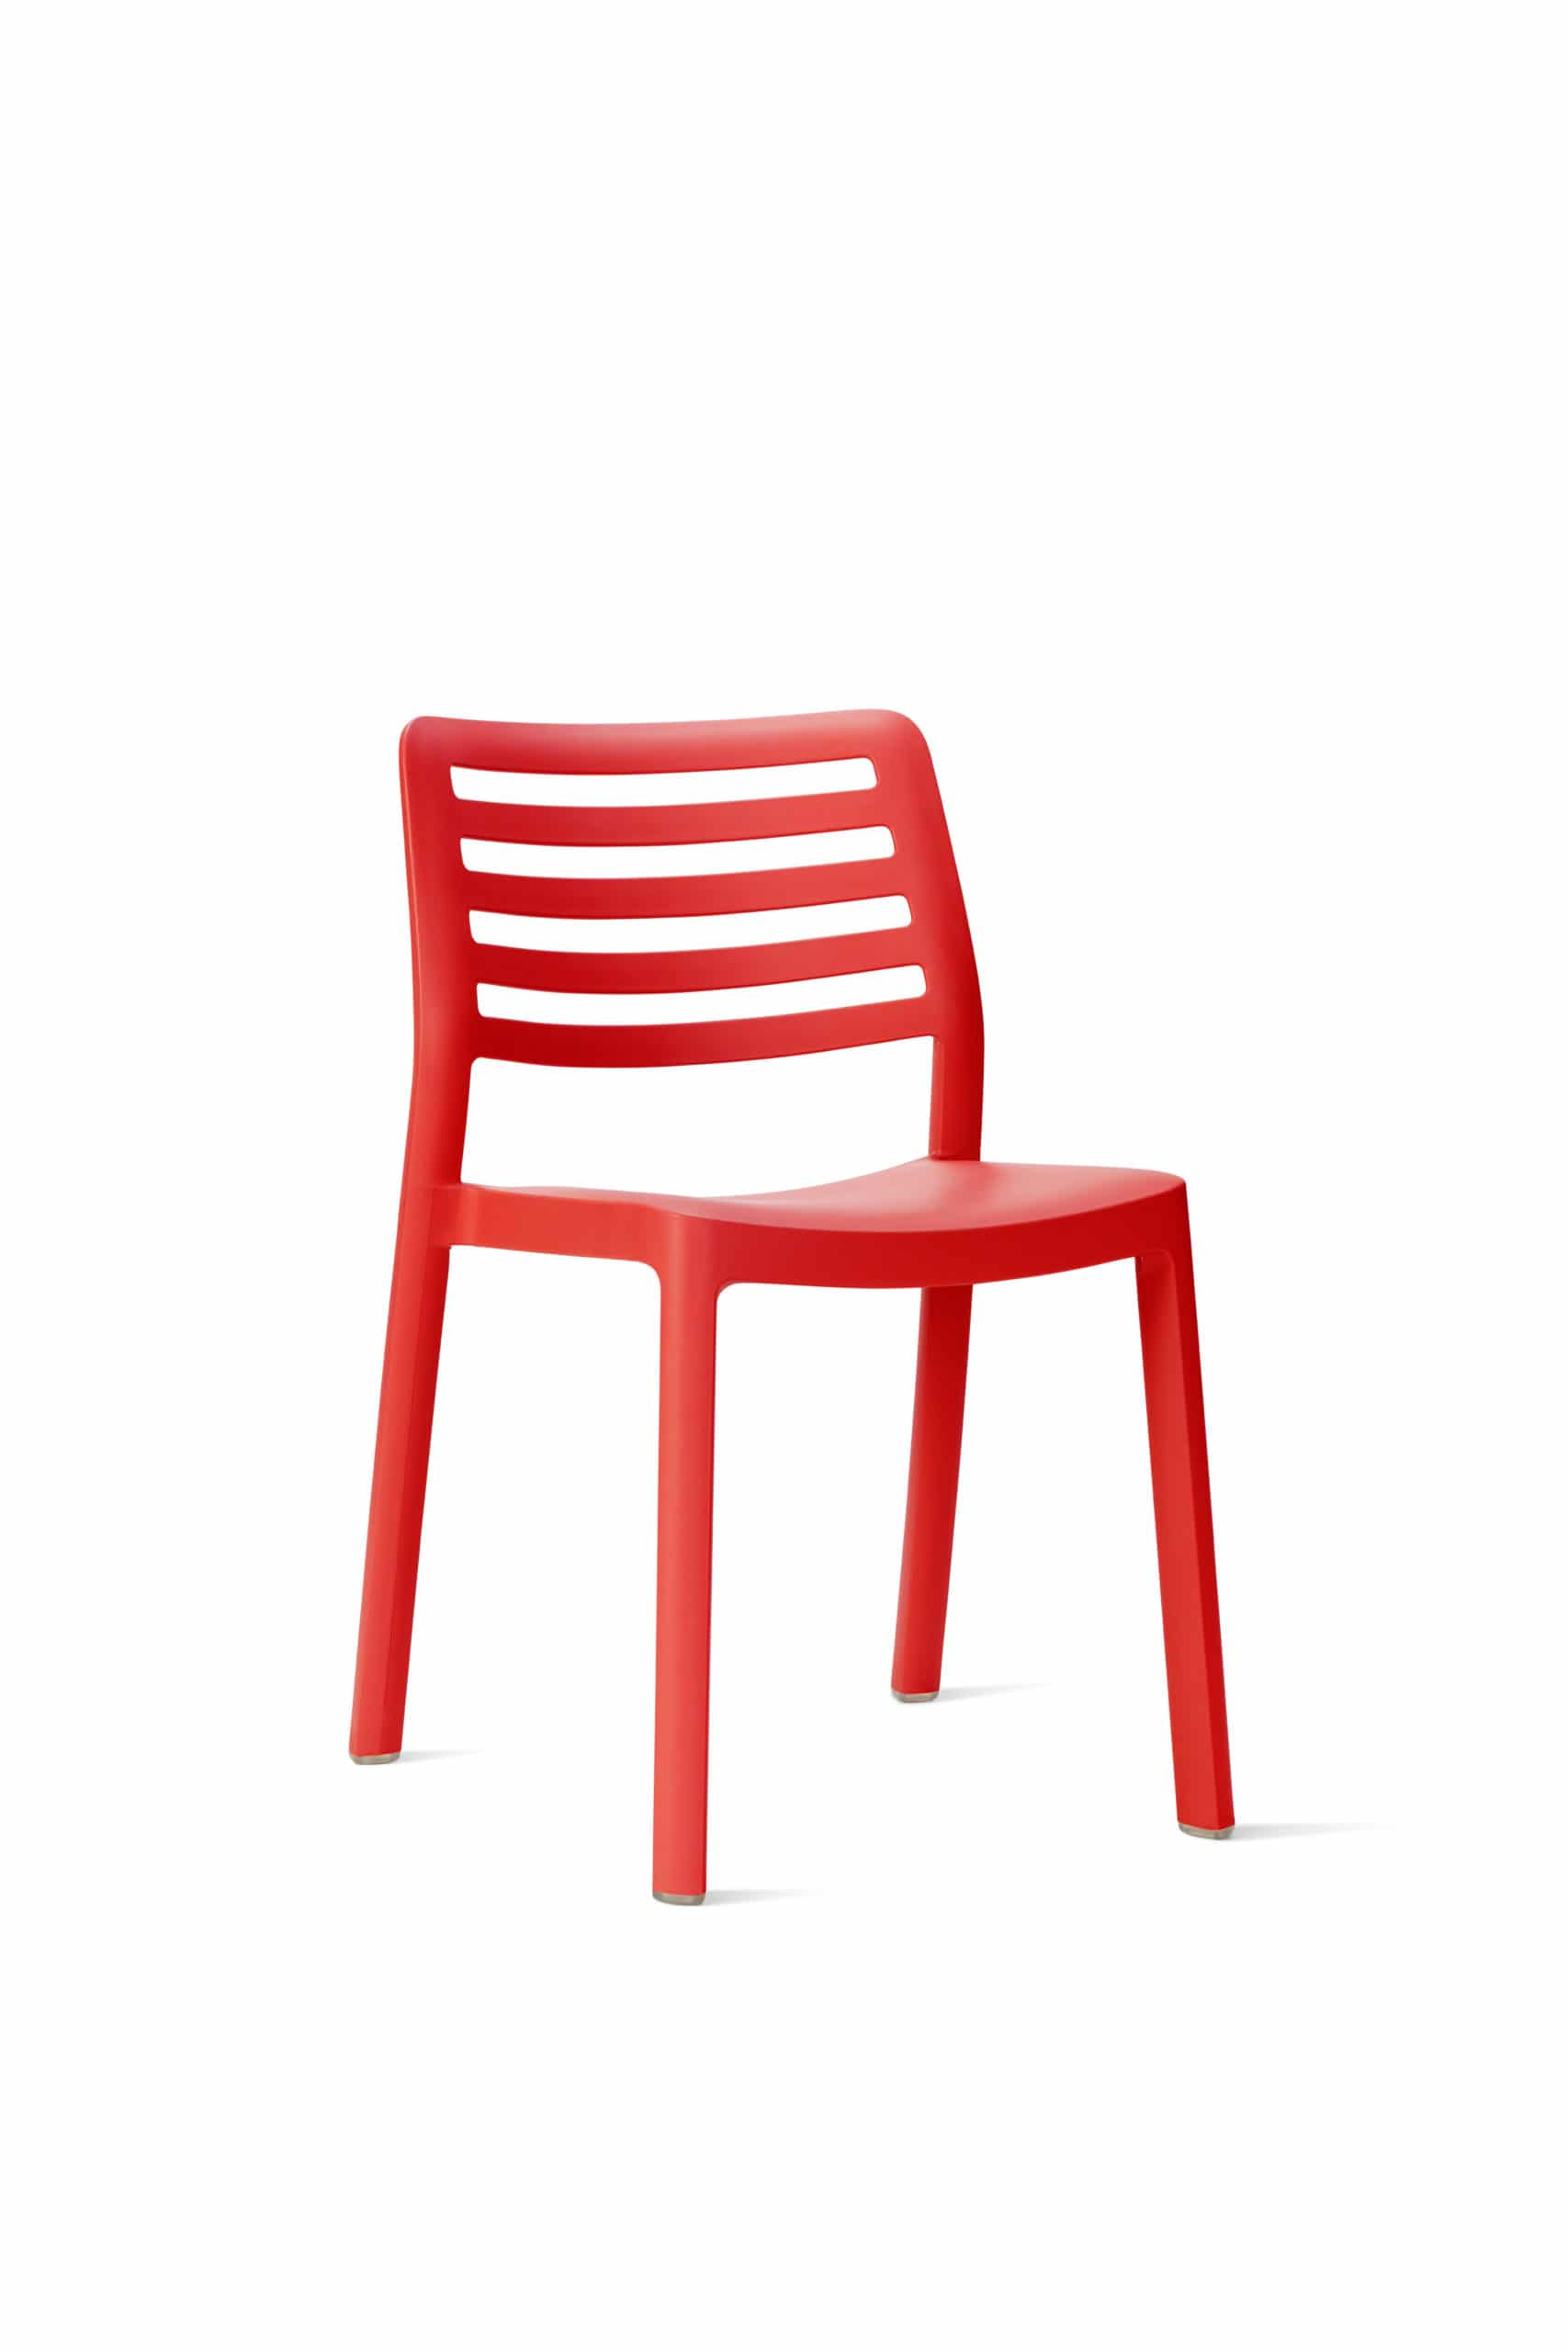 <p>Outdoor Furniture Contemporary Collection – Baca Chair – Red.</p> <p> </p> <p>Chair designed for indoor and outdoor use available in a variety of colours, stackable, capturing essential features such as lightness, stability, functionality, ergonomics and care for the environment</p>